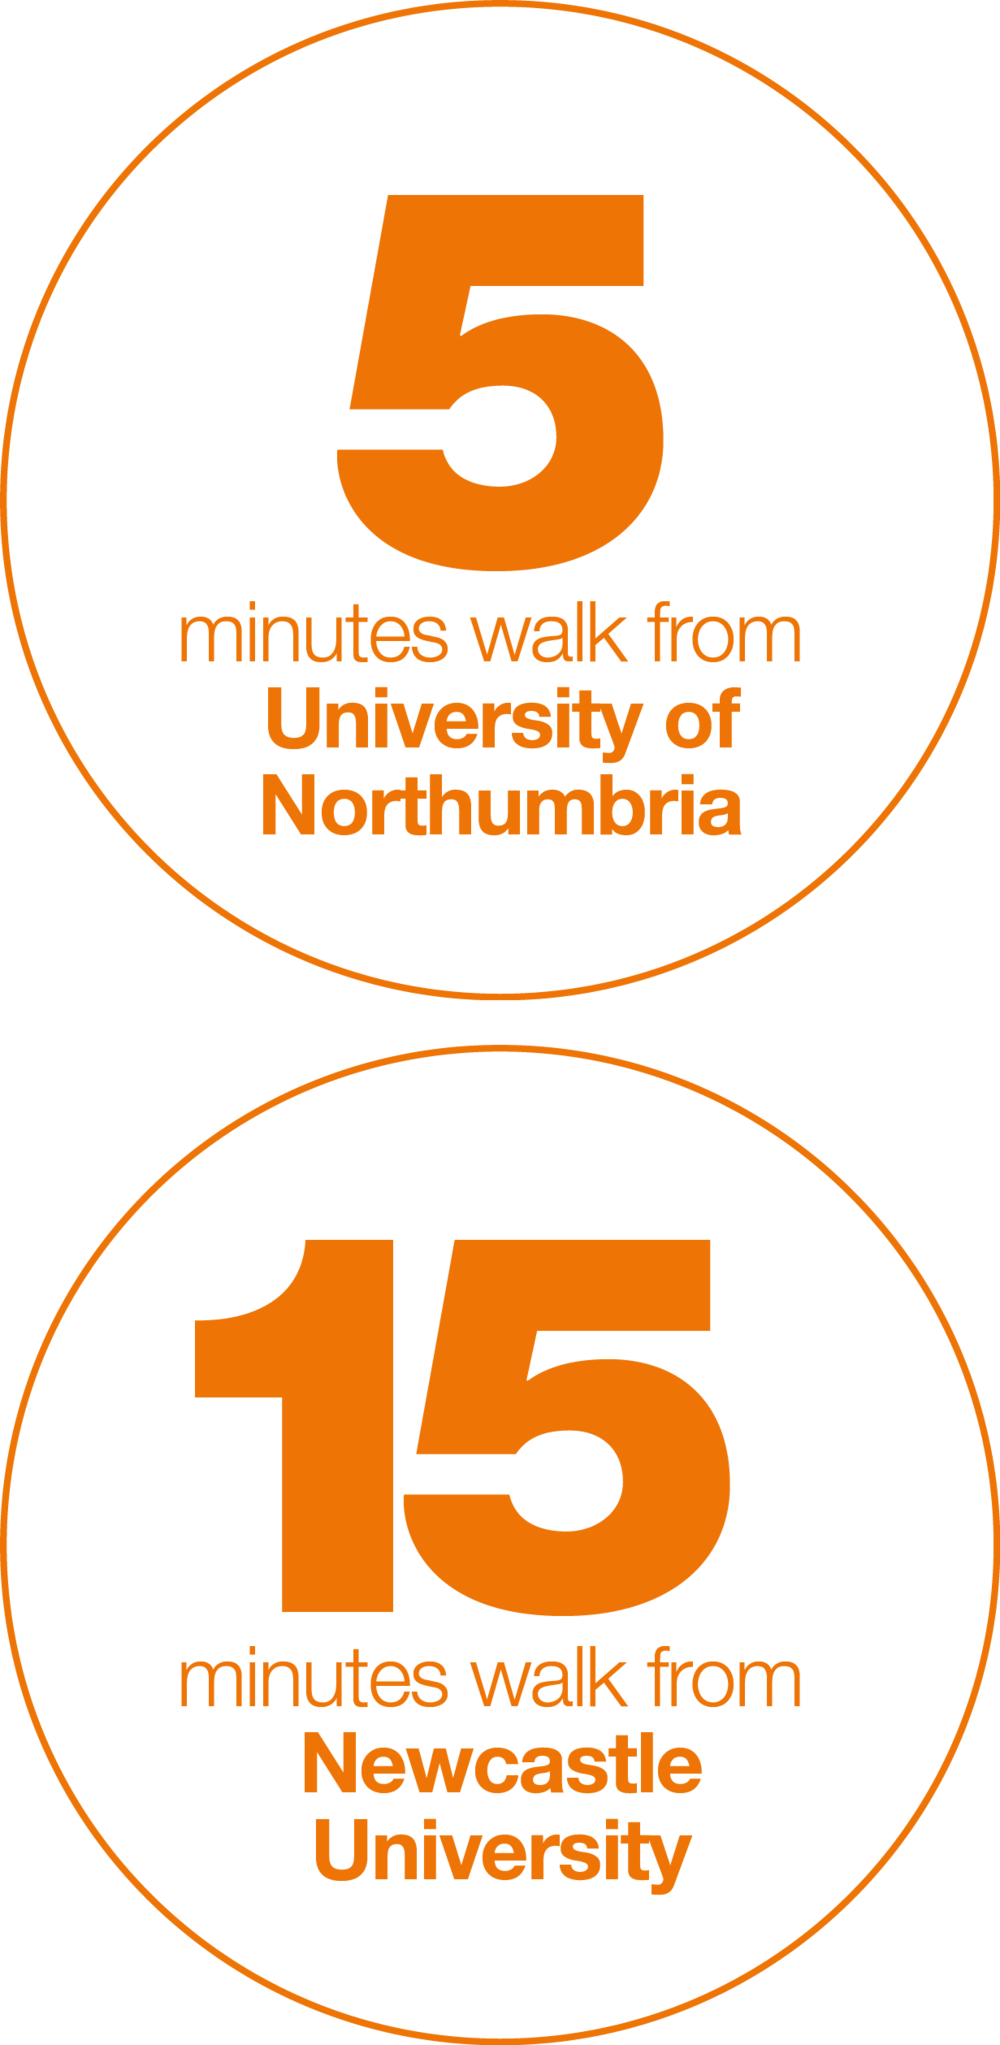 15 minutes walk to Newcastle University